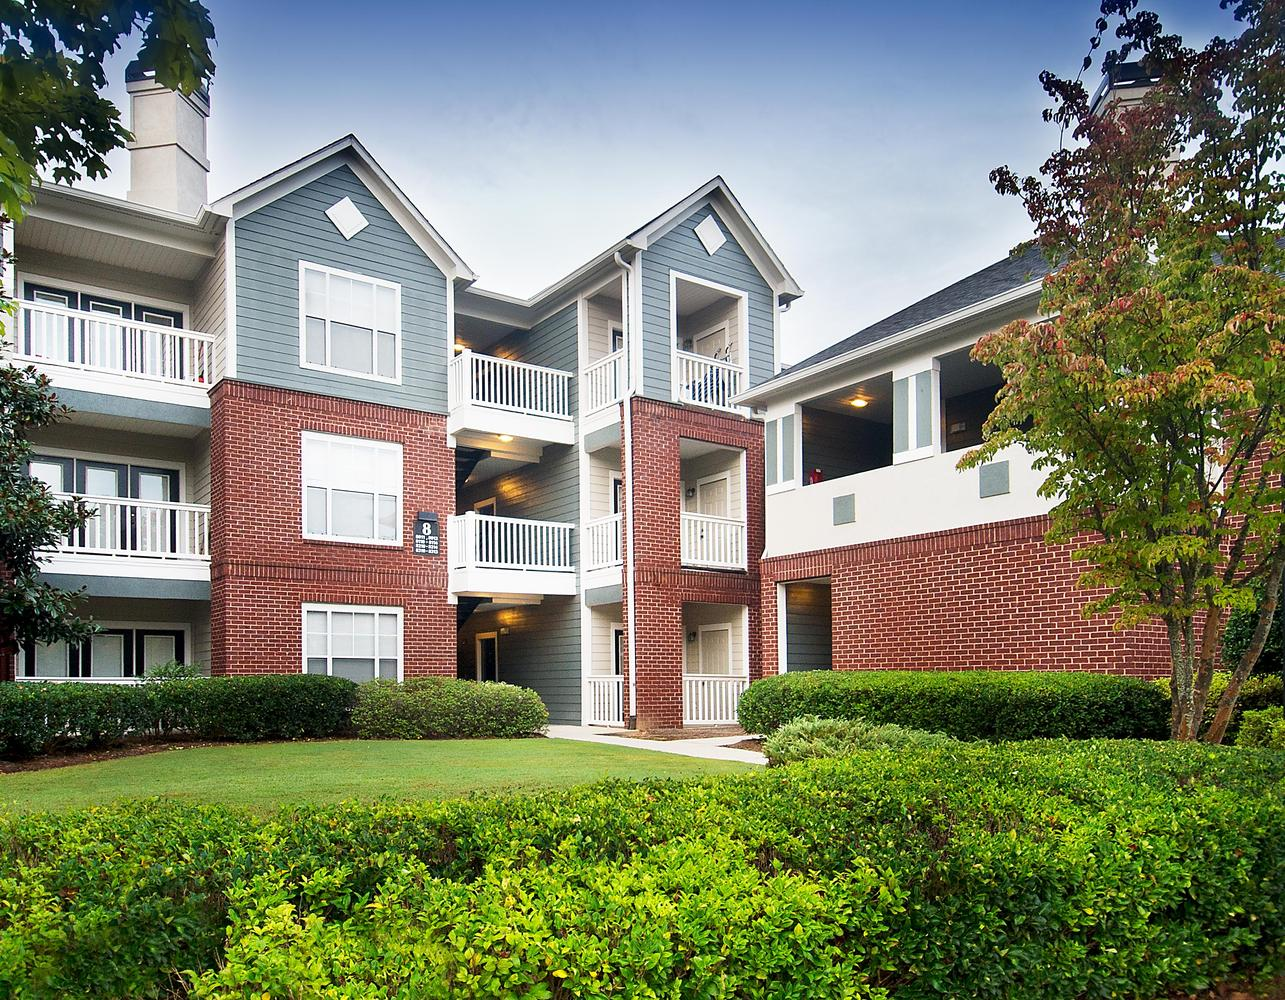 Gables Sugarloaf | Gables Residential Communities